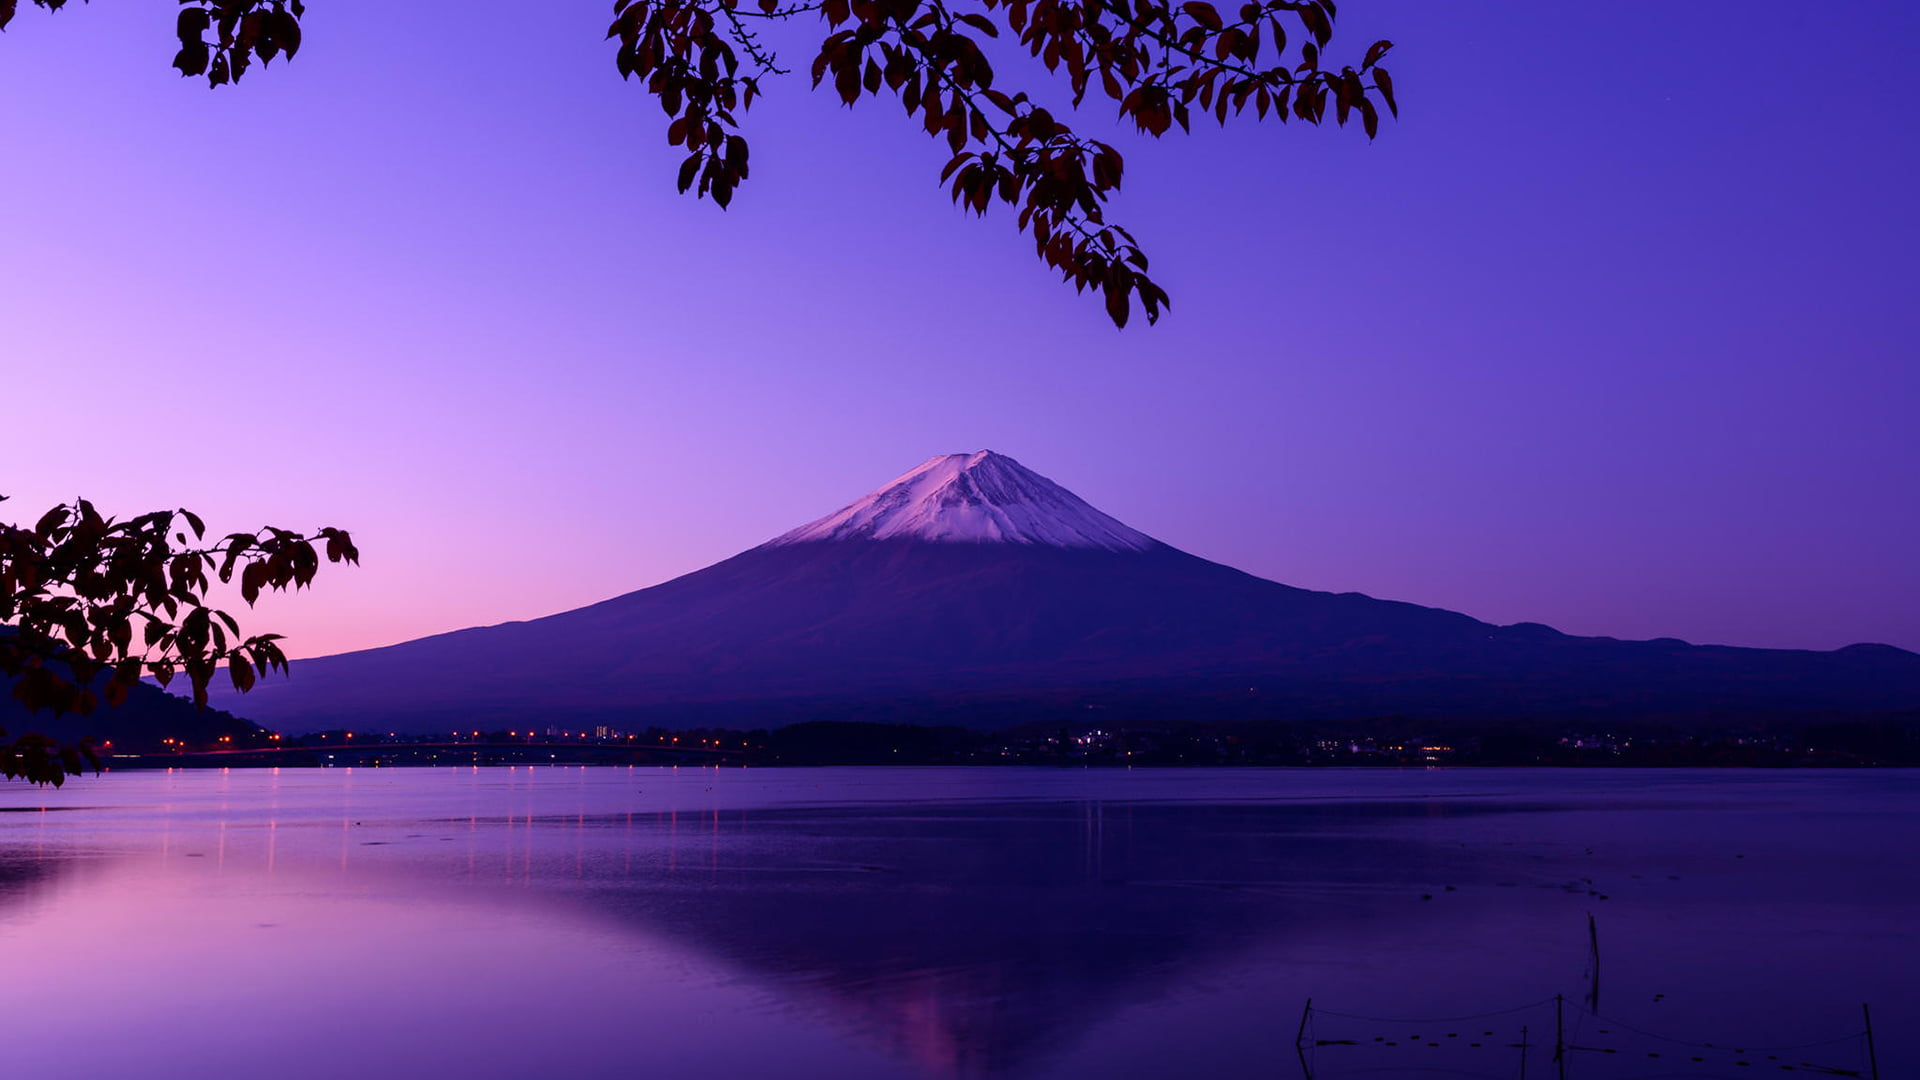 Landscape photography of Mount Fuji in Japan HD wallpaper 1920x1080